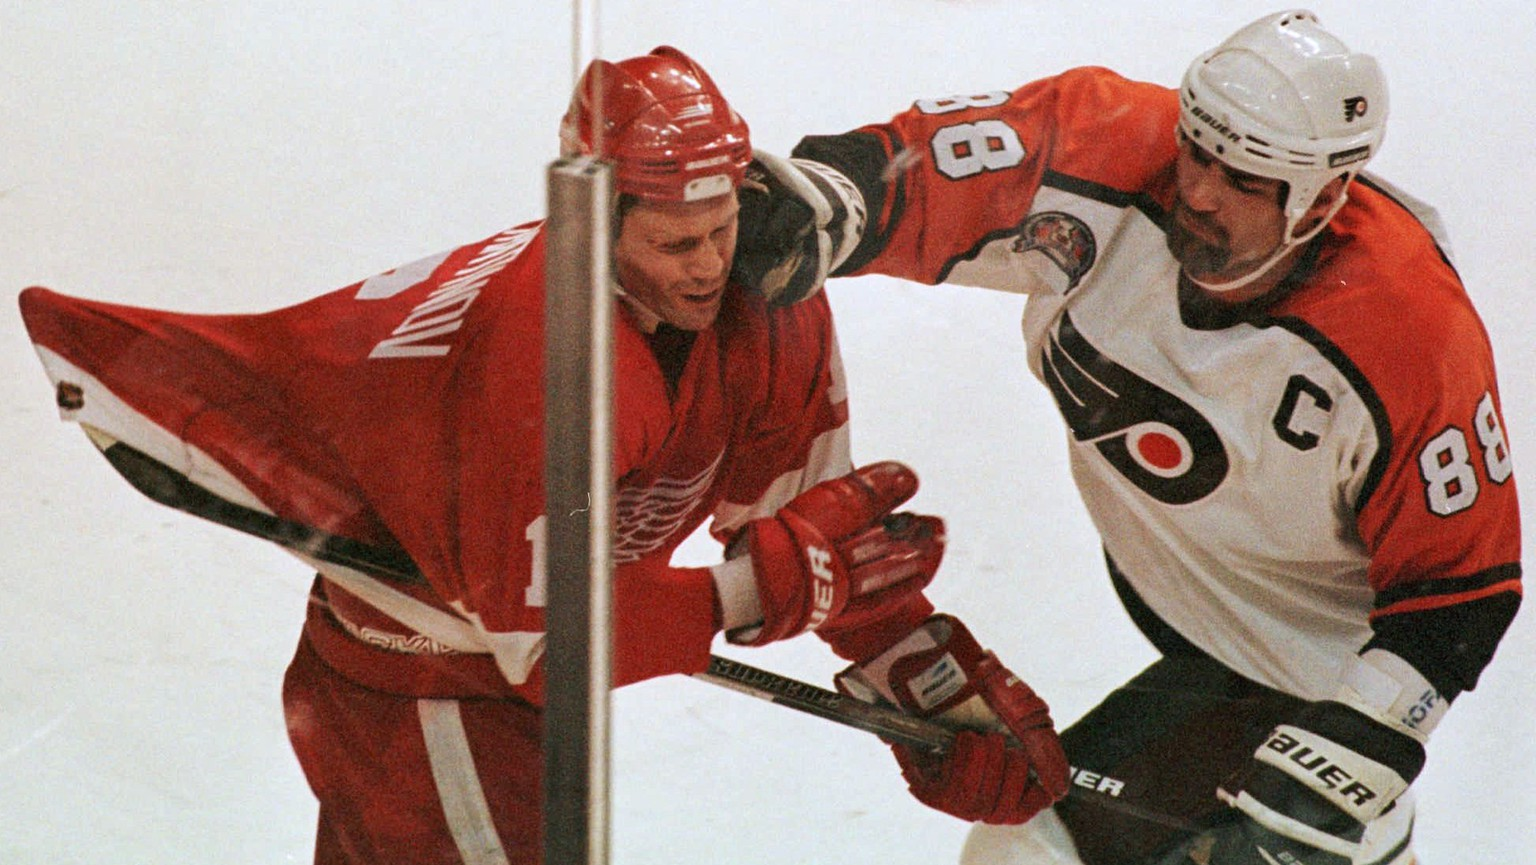 In this May 31, 1997 file photo Philadelphia Flyers Eric Lindros roughs up Detroit Red Wings Vladimir Konstantinov during the final minutes of Detroit's 4-2 victory over the Flyers in Game 1 of the Stanley Cup Finals, in Philadelphia.  Lindros returns Thursday night, Nov. 20, 2014, to the Wells Fargo Center when he is inducted into the Flyers Hall of Fame.  (AP Photo/Ron Frehm, File)